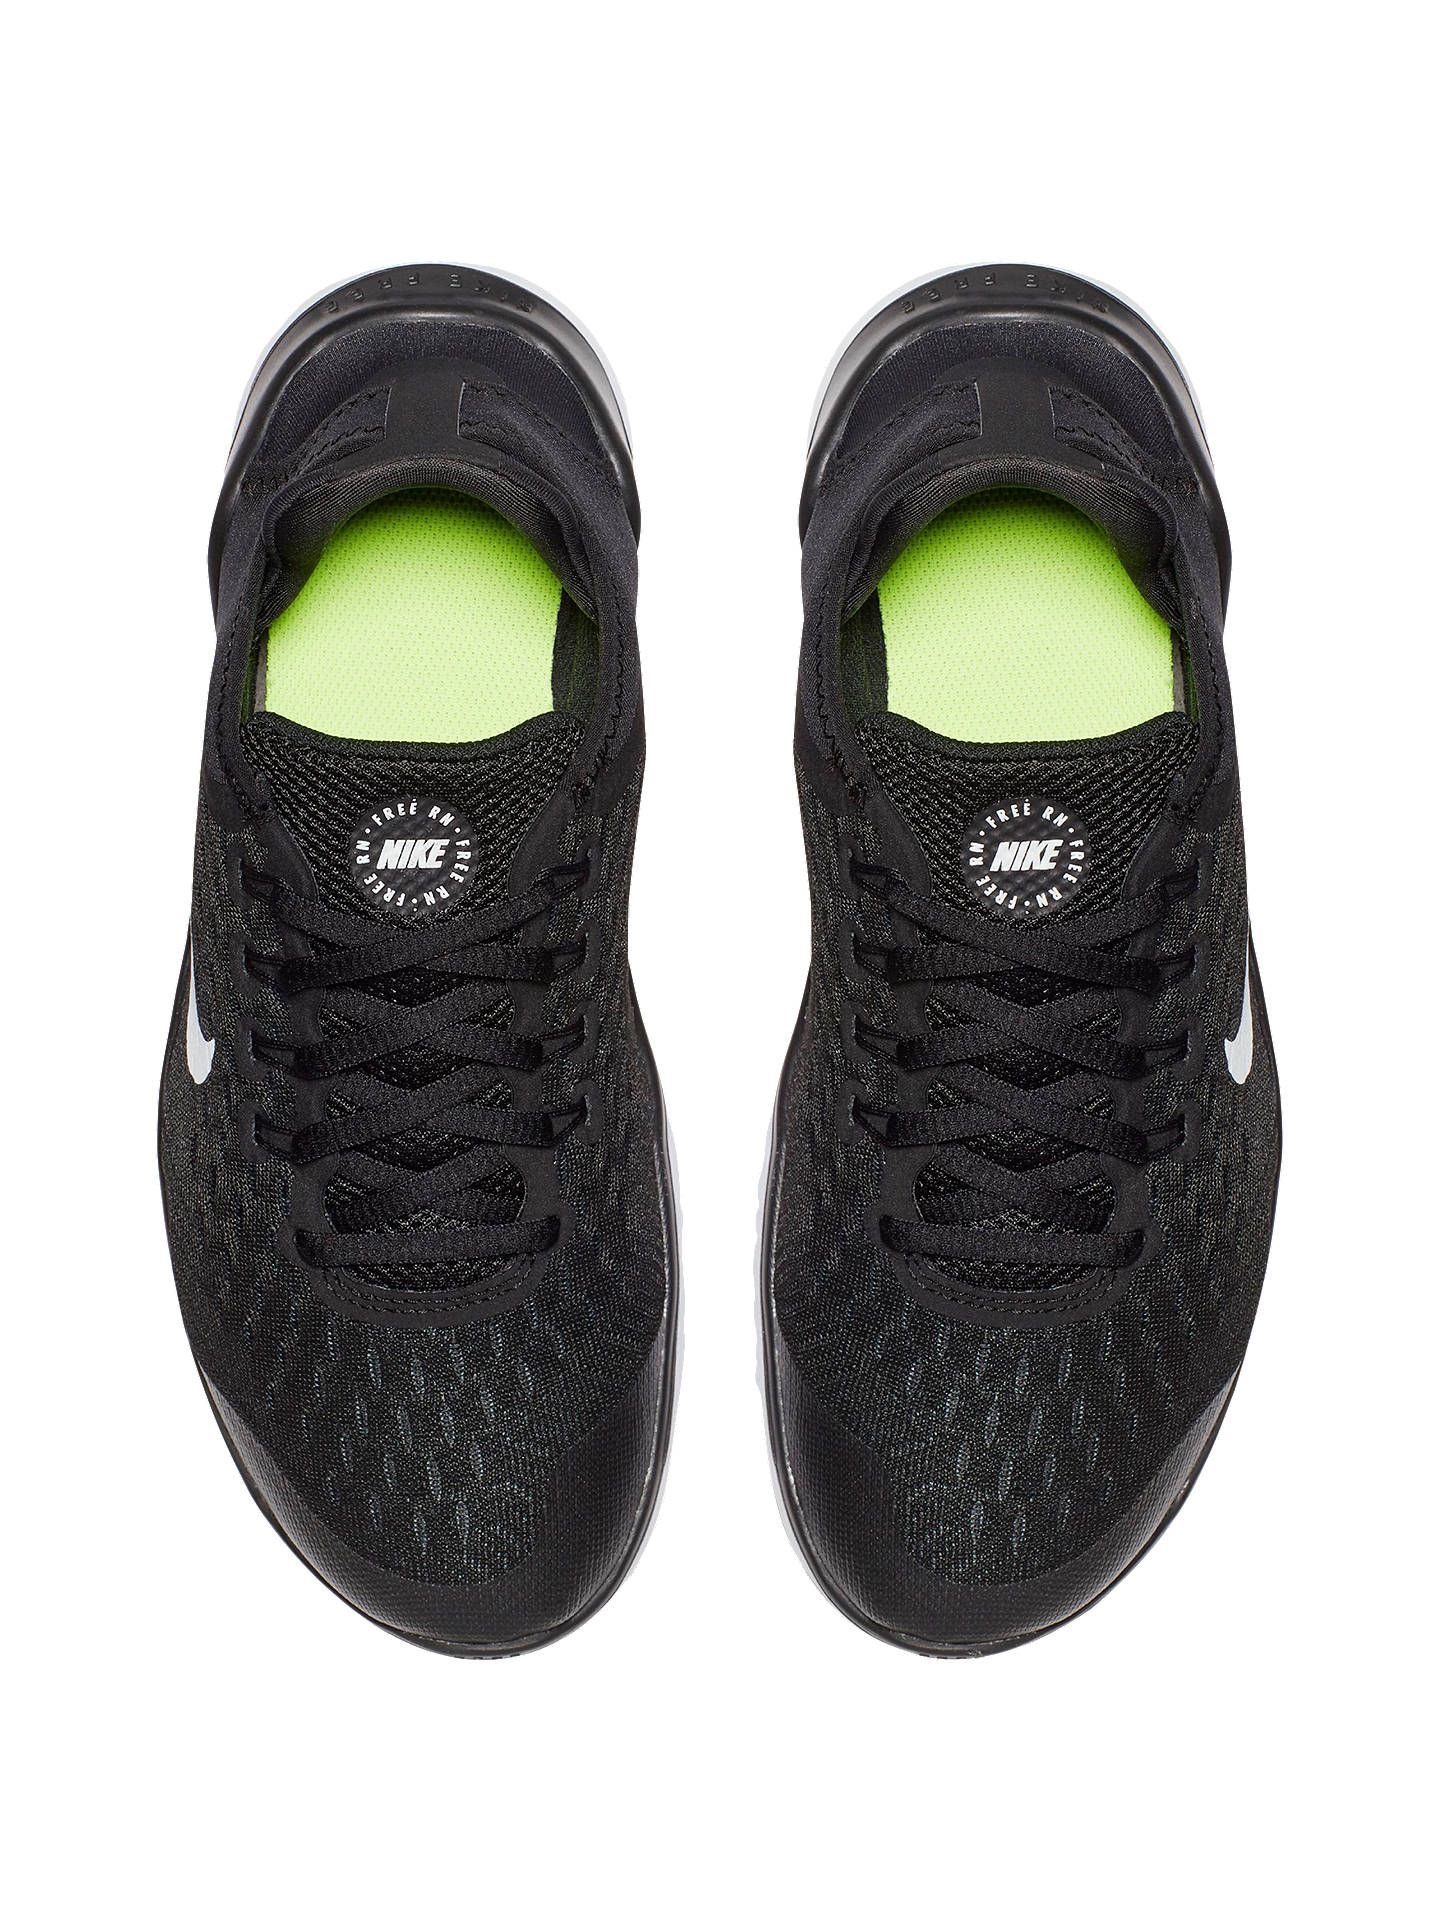 quality design 29c0e 9623f Nike Children's Free RN 2018 Trainers at John Lewis & Partners